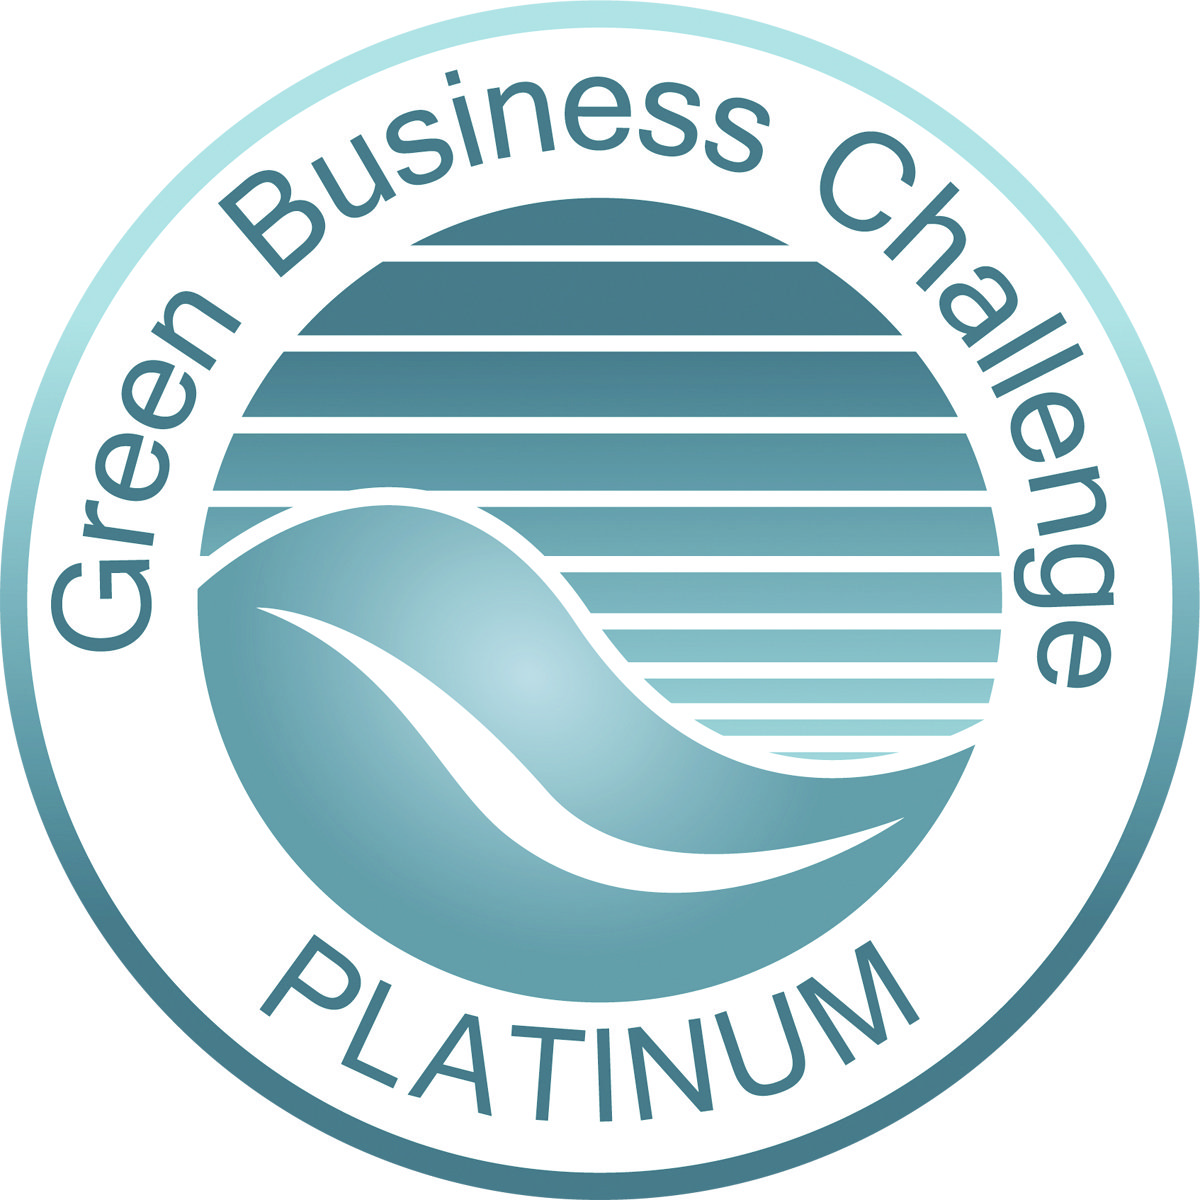 LCCC Green Business Challenge Winner